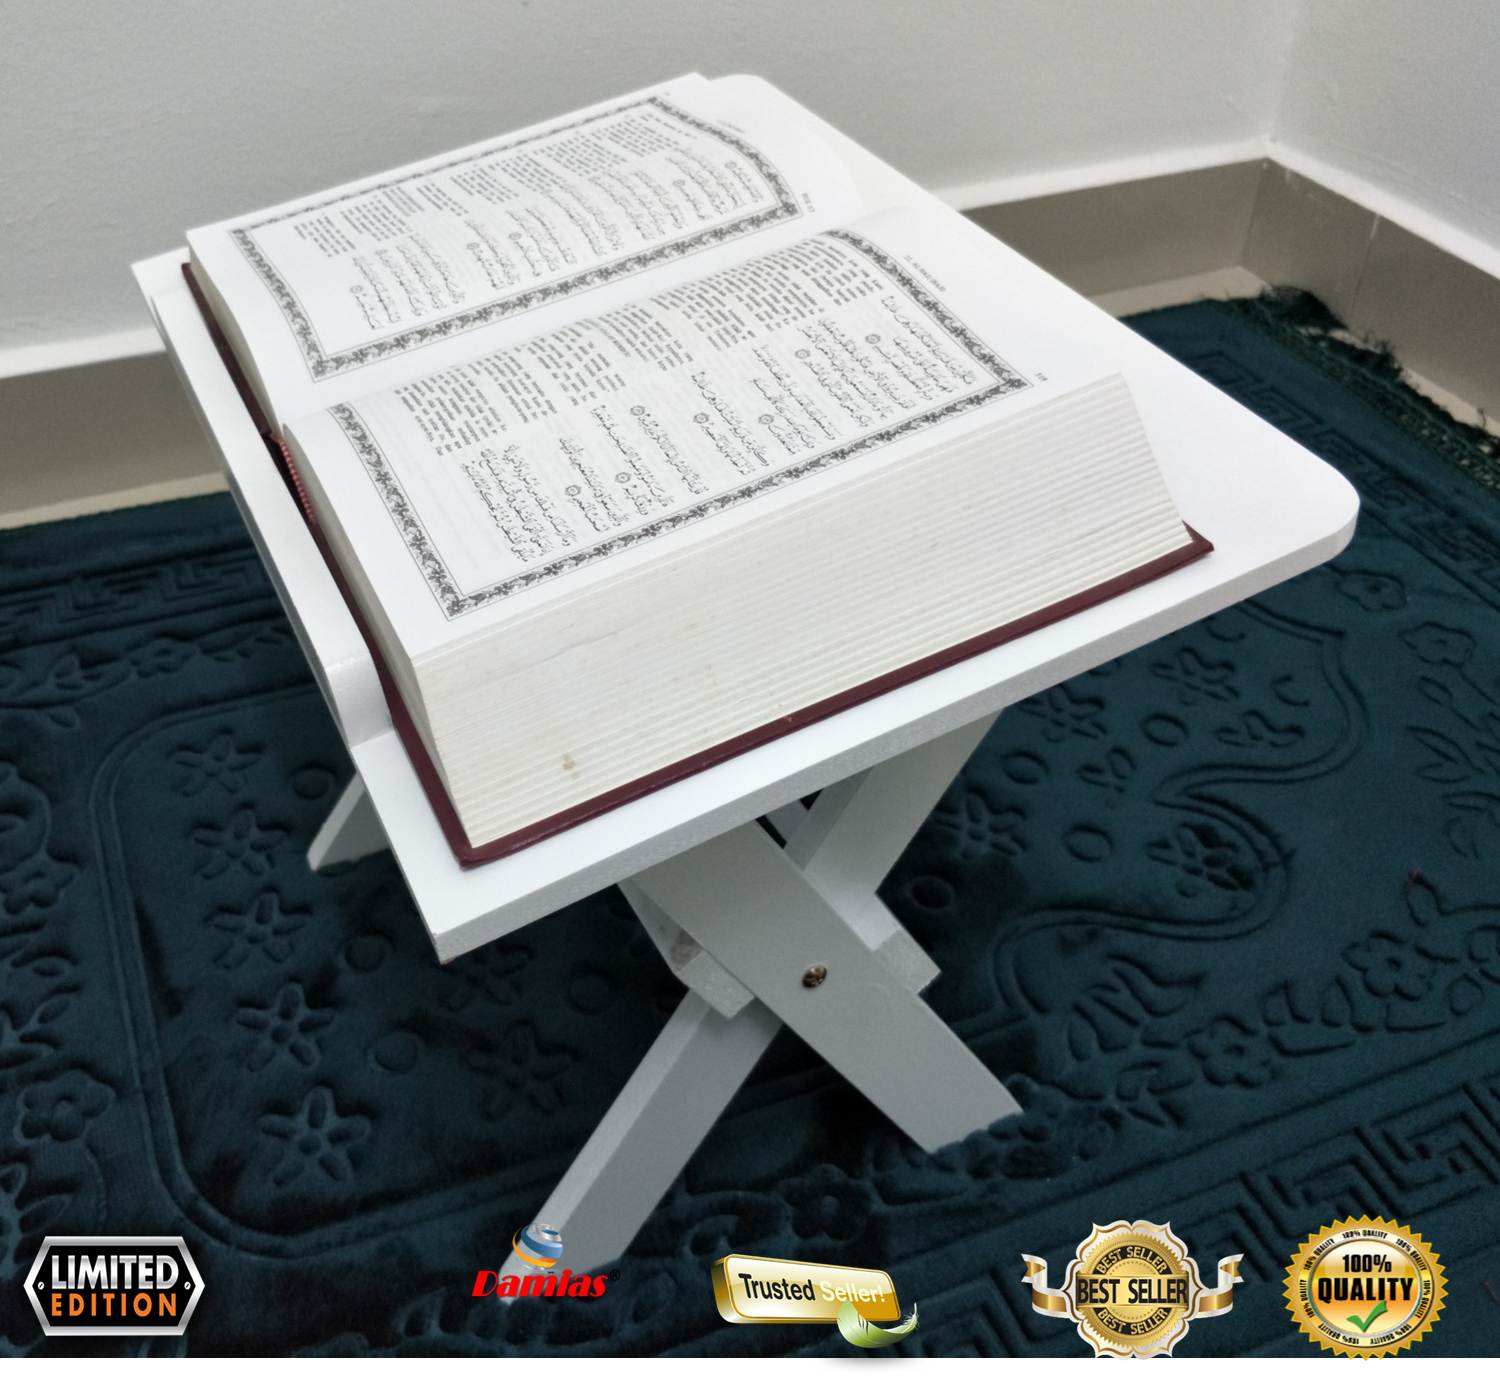 Rehal kayu Quran Holder Book Stand Rihal Wooden [ Large ]